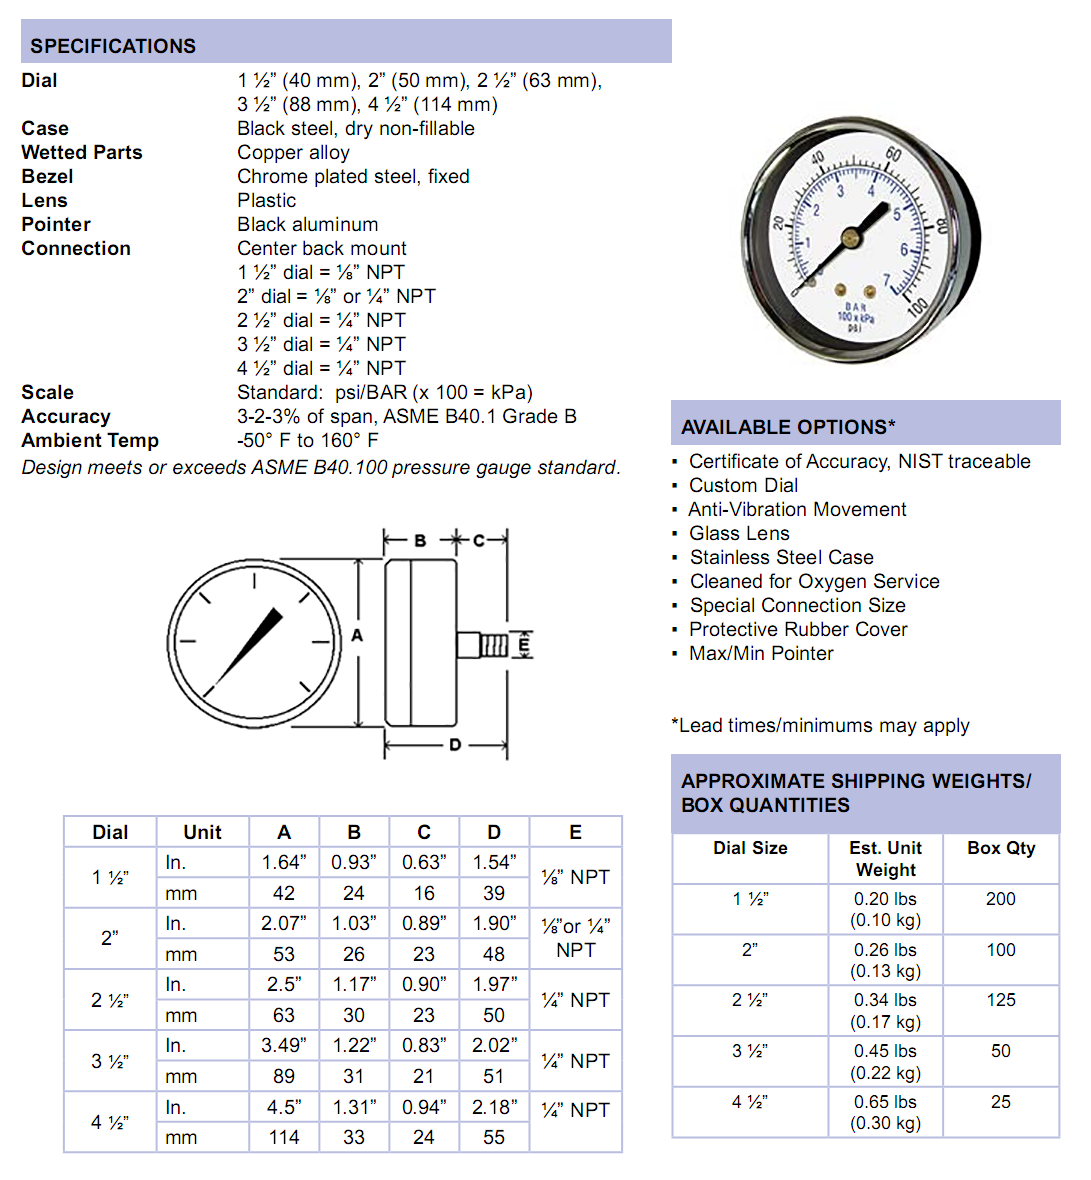 102d-utility-gauge-center-back-mount-specifications